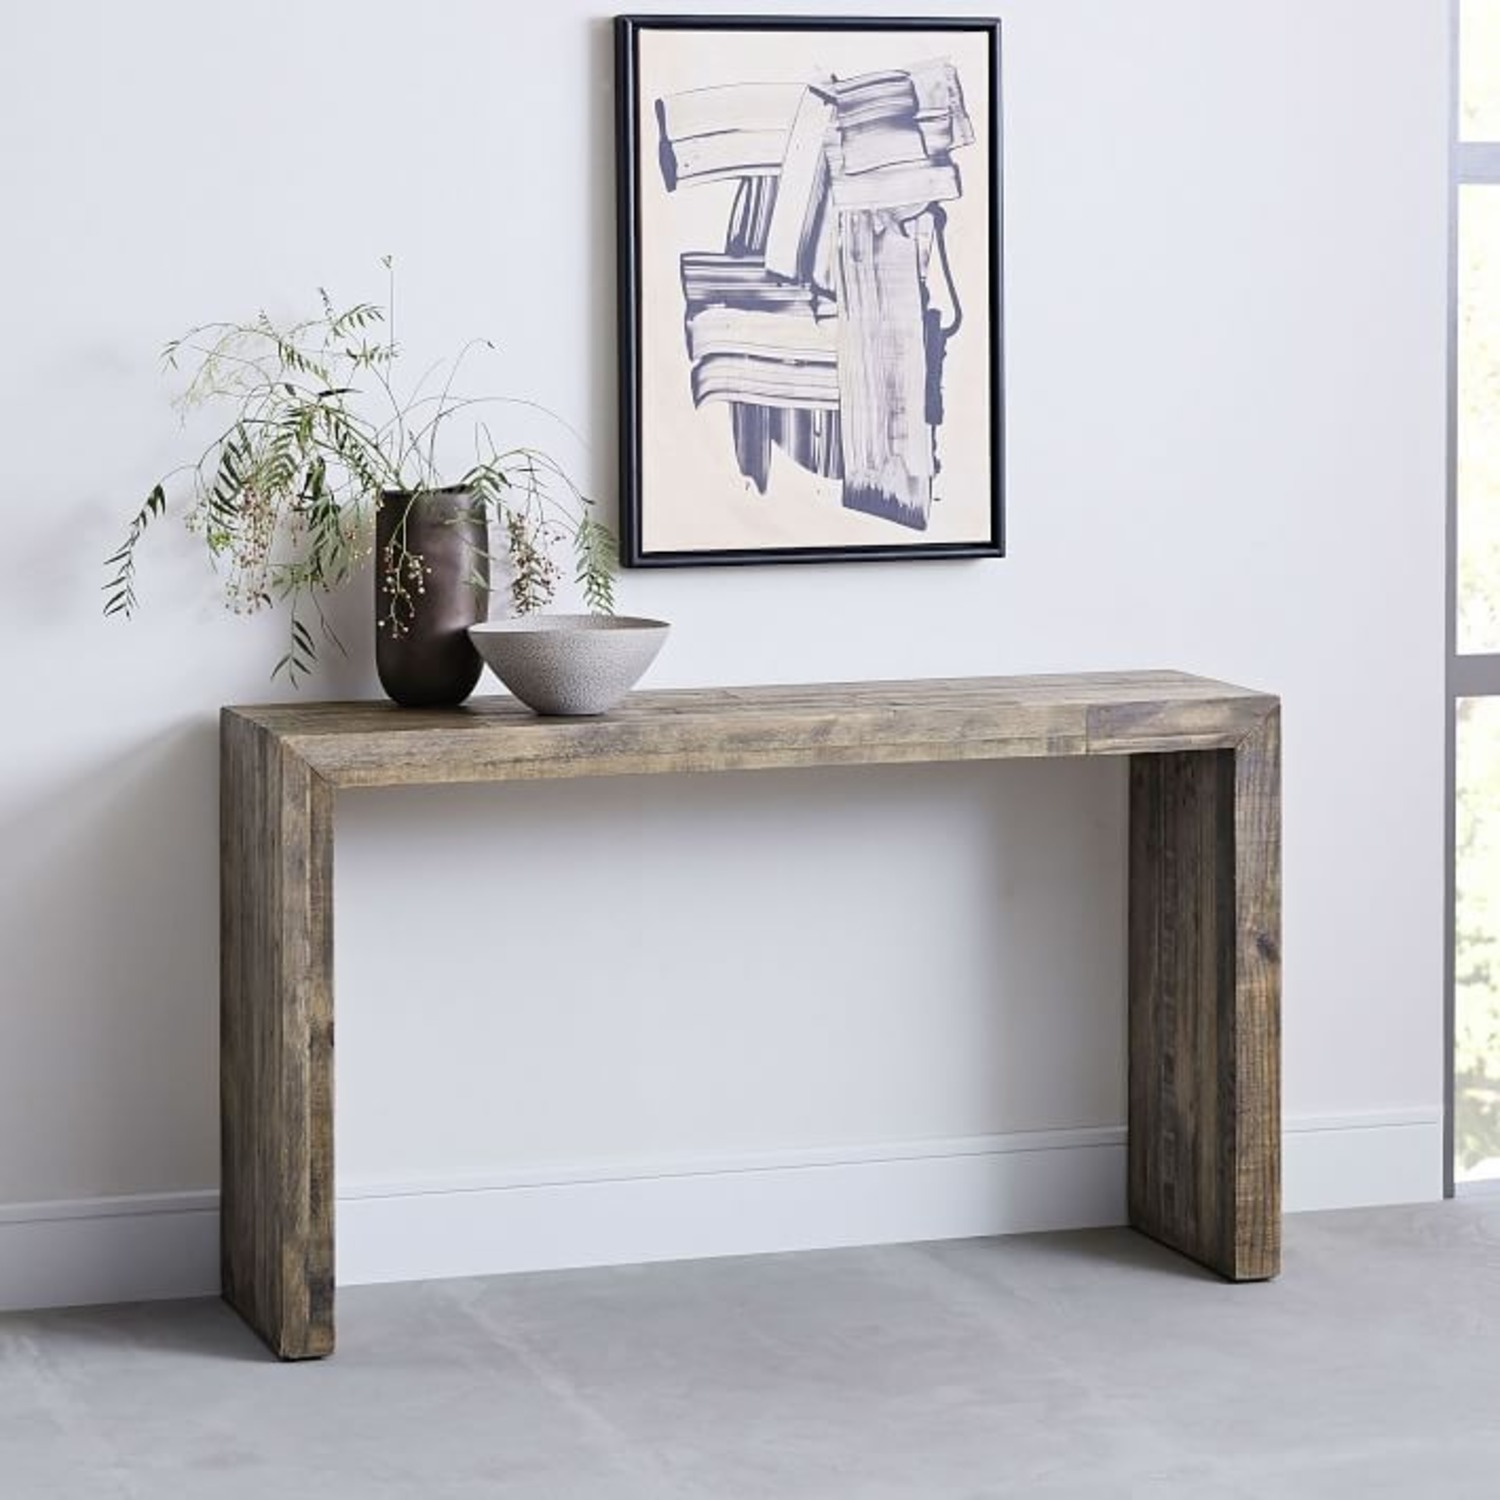 West Elm Emmerson® Reclaimed Wood Console - image-1